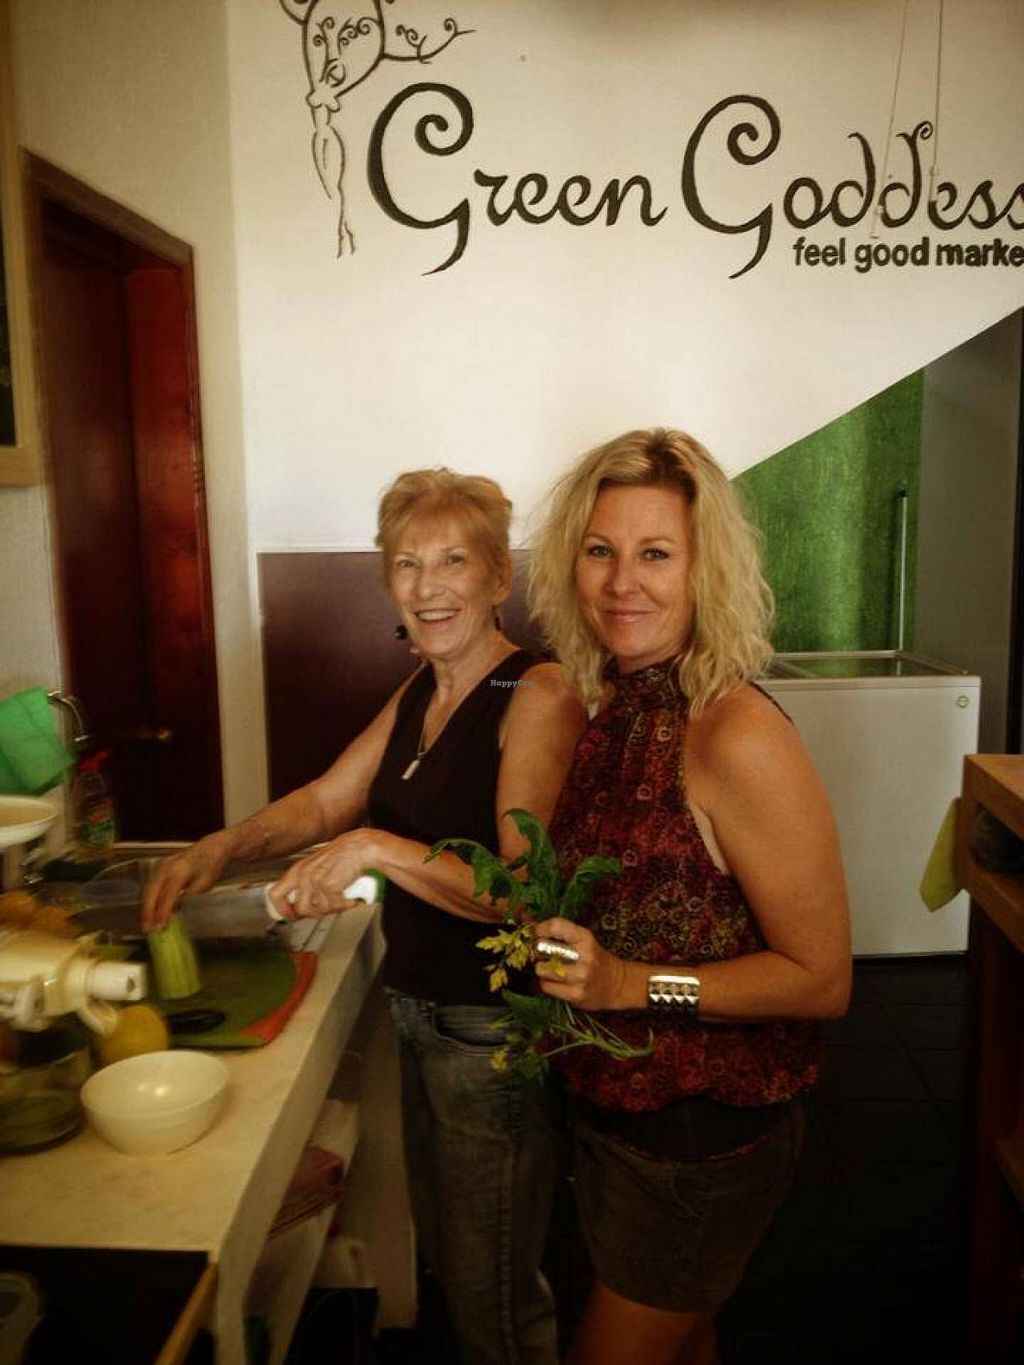 """Photo of CLOSED: Green Goddess Feel Good Market  by <a href=""""/members/profile/JoannaCoonFoxT"""">JoannaCoonFoxT</a> <br/>employee of the month GRAMMA <br/> April 5, 2014  - <a href='/contact/abuse/image/46341/67088'>Report</a>"""